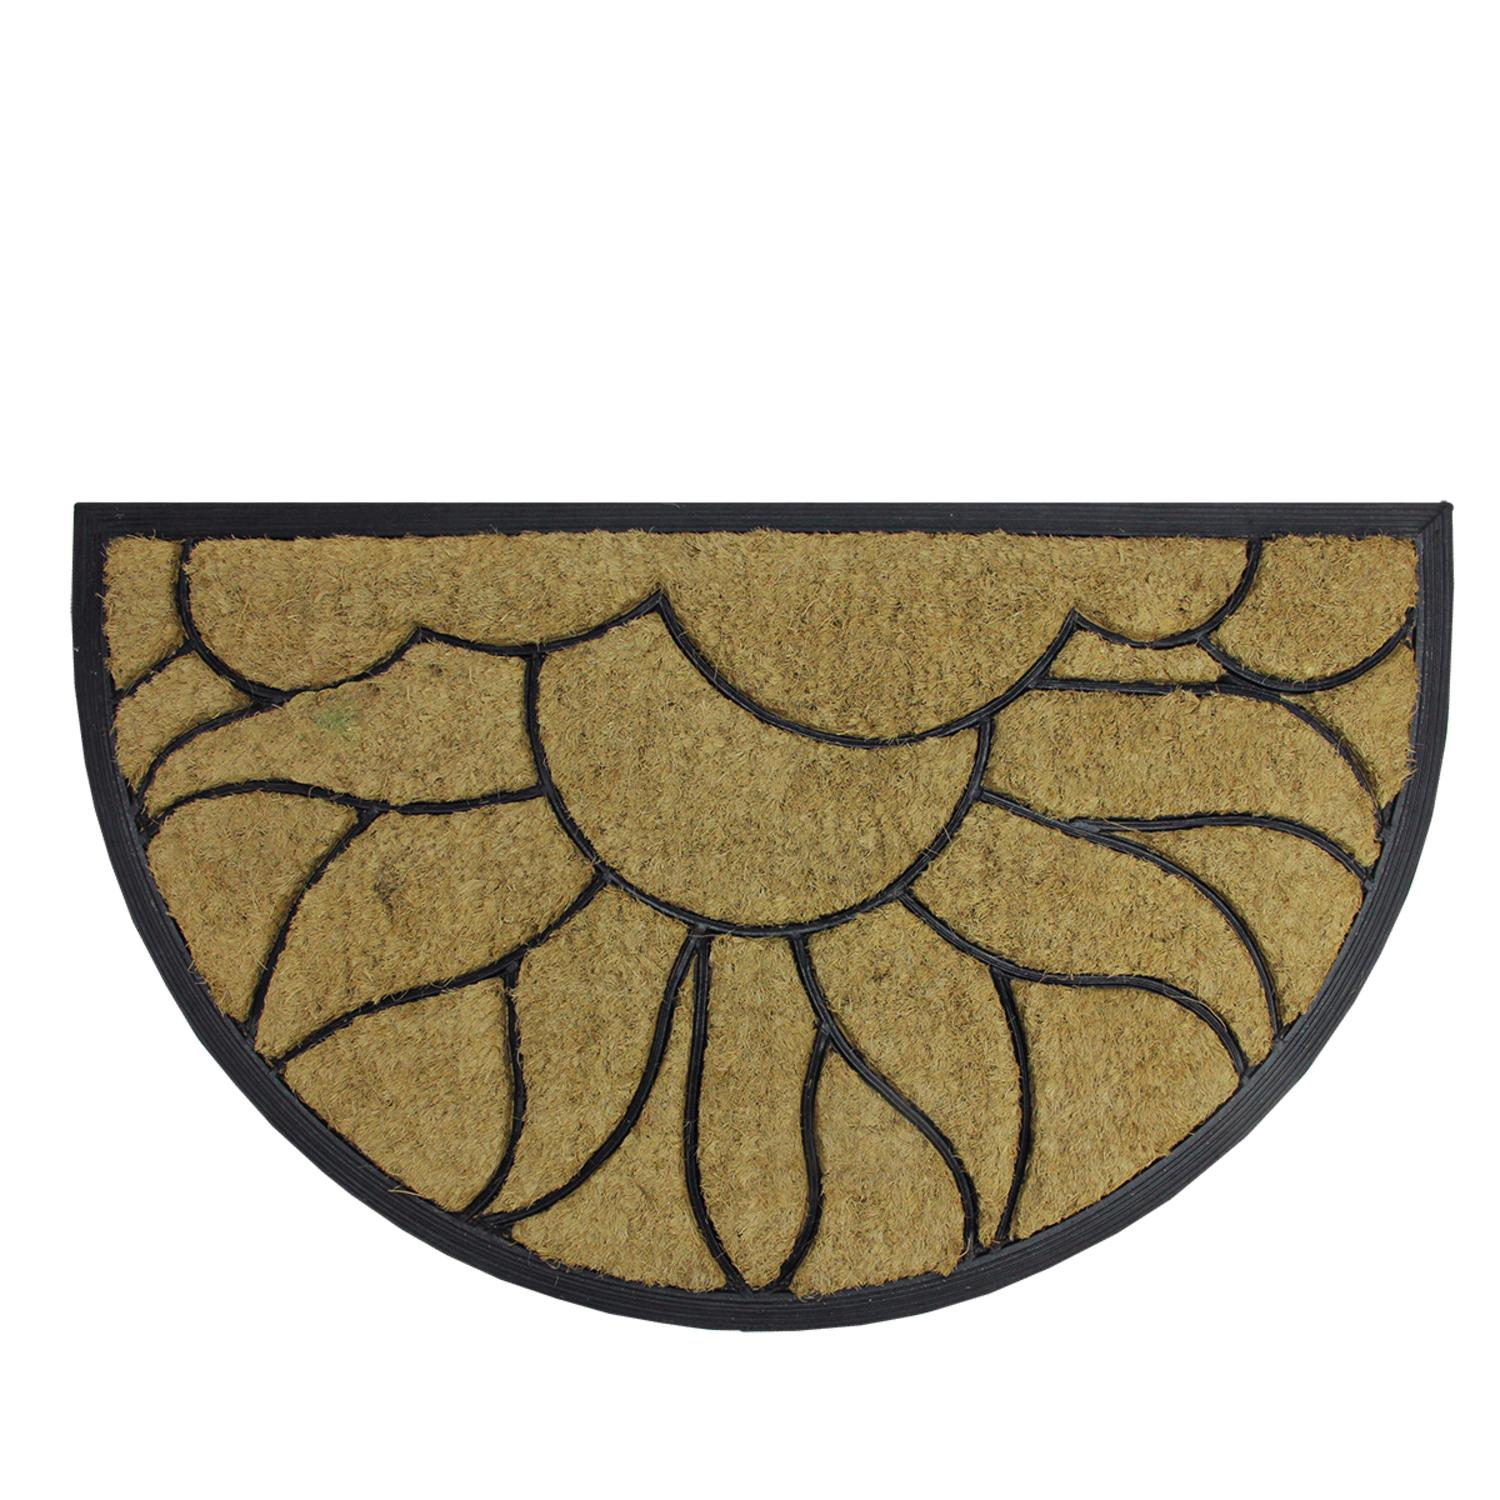 Decorative Black Rubber And Coir Outdoor Half Round Door Mat 29 75 X 17